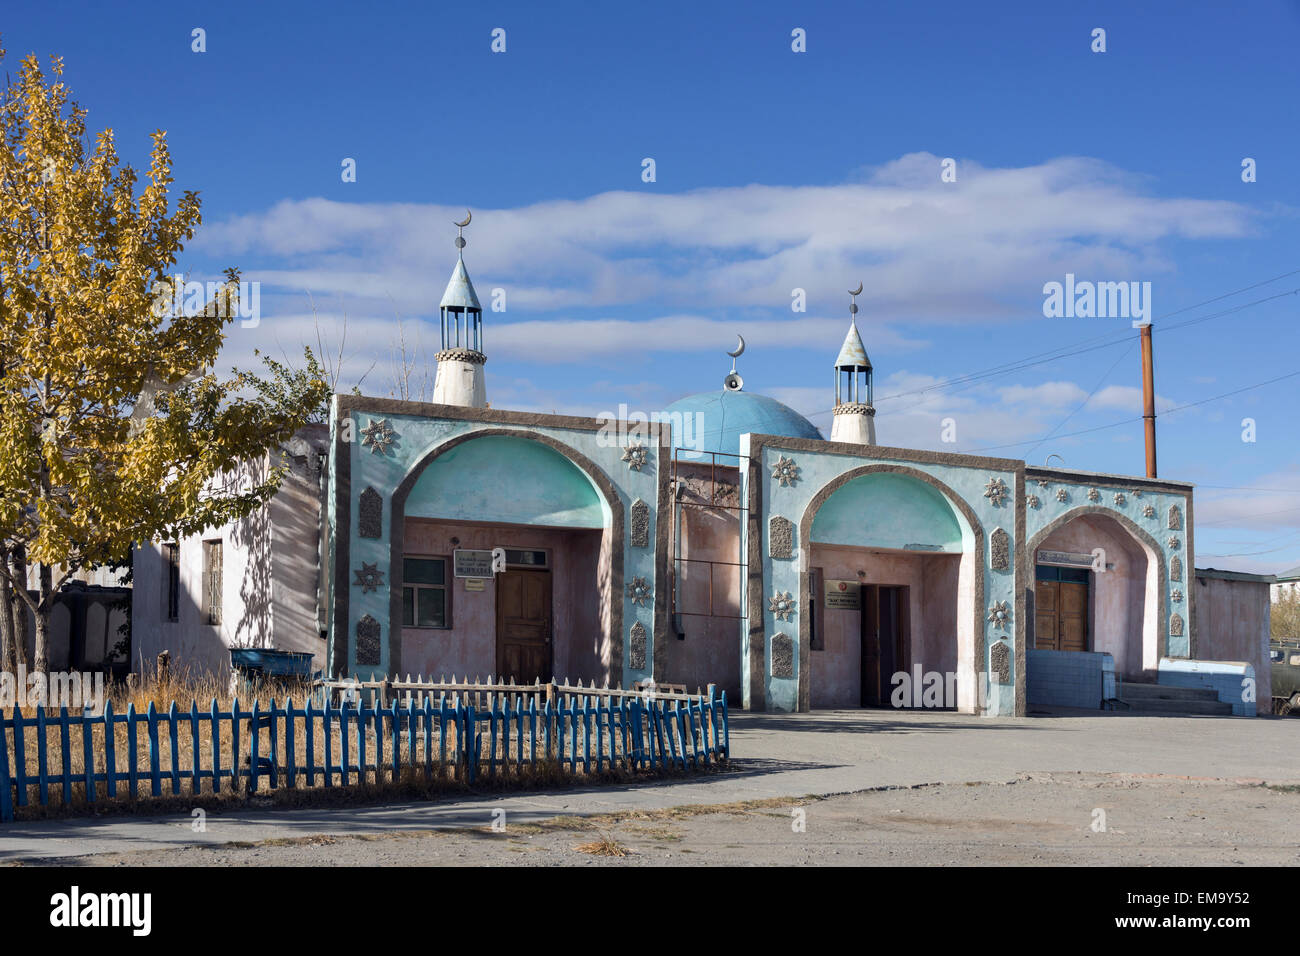 Central mosque, Olgii, Western Mongolia Stock Photo